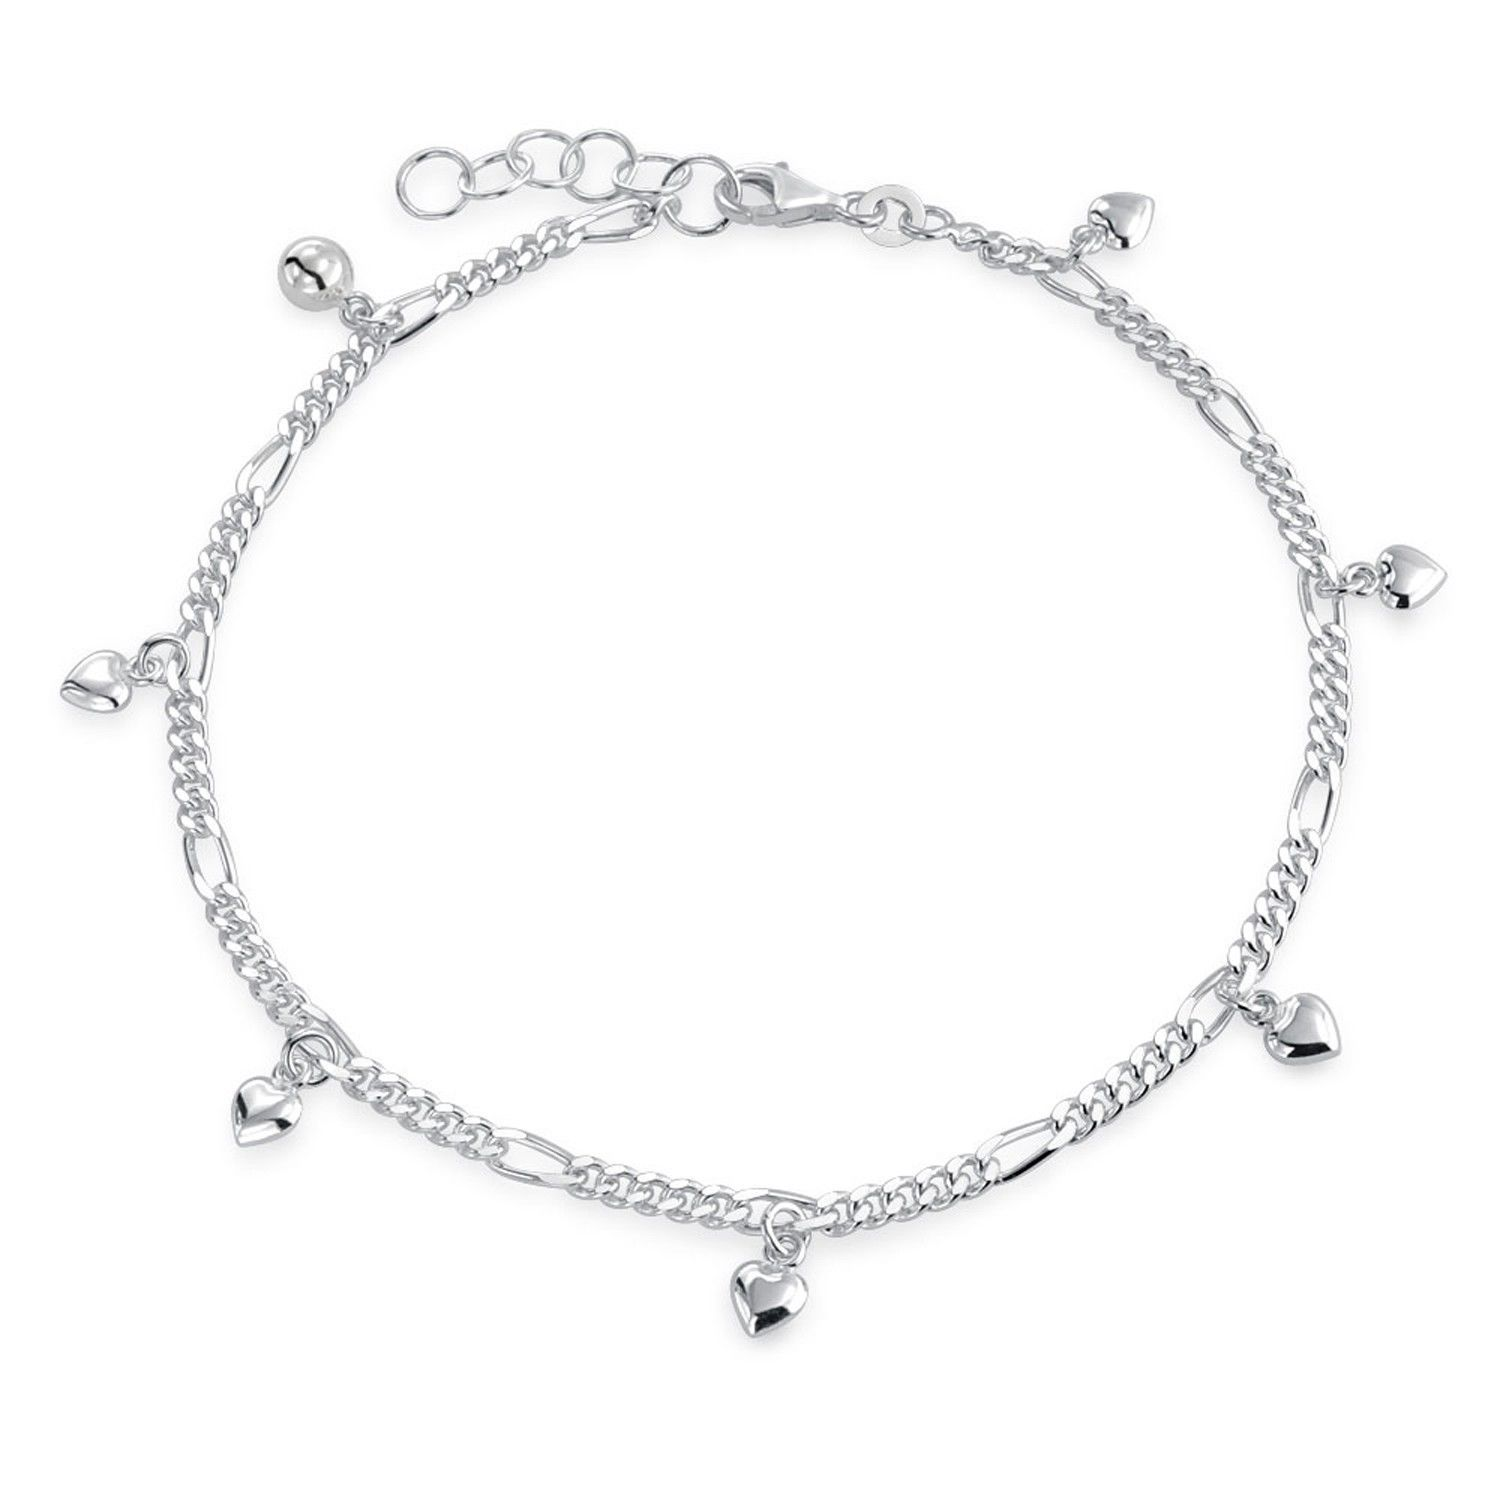 ankle chain women product anklets foot fine real jewelry bracelets bracelet silver anklet crystal for heart